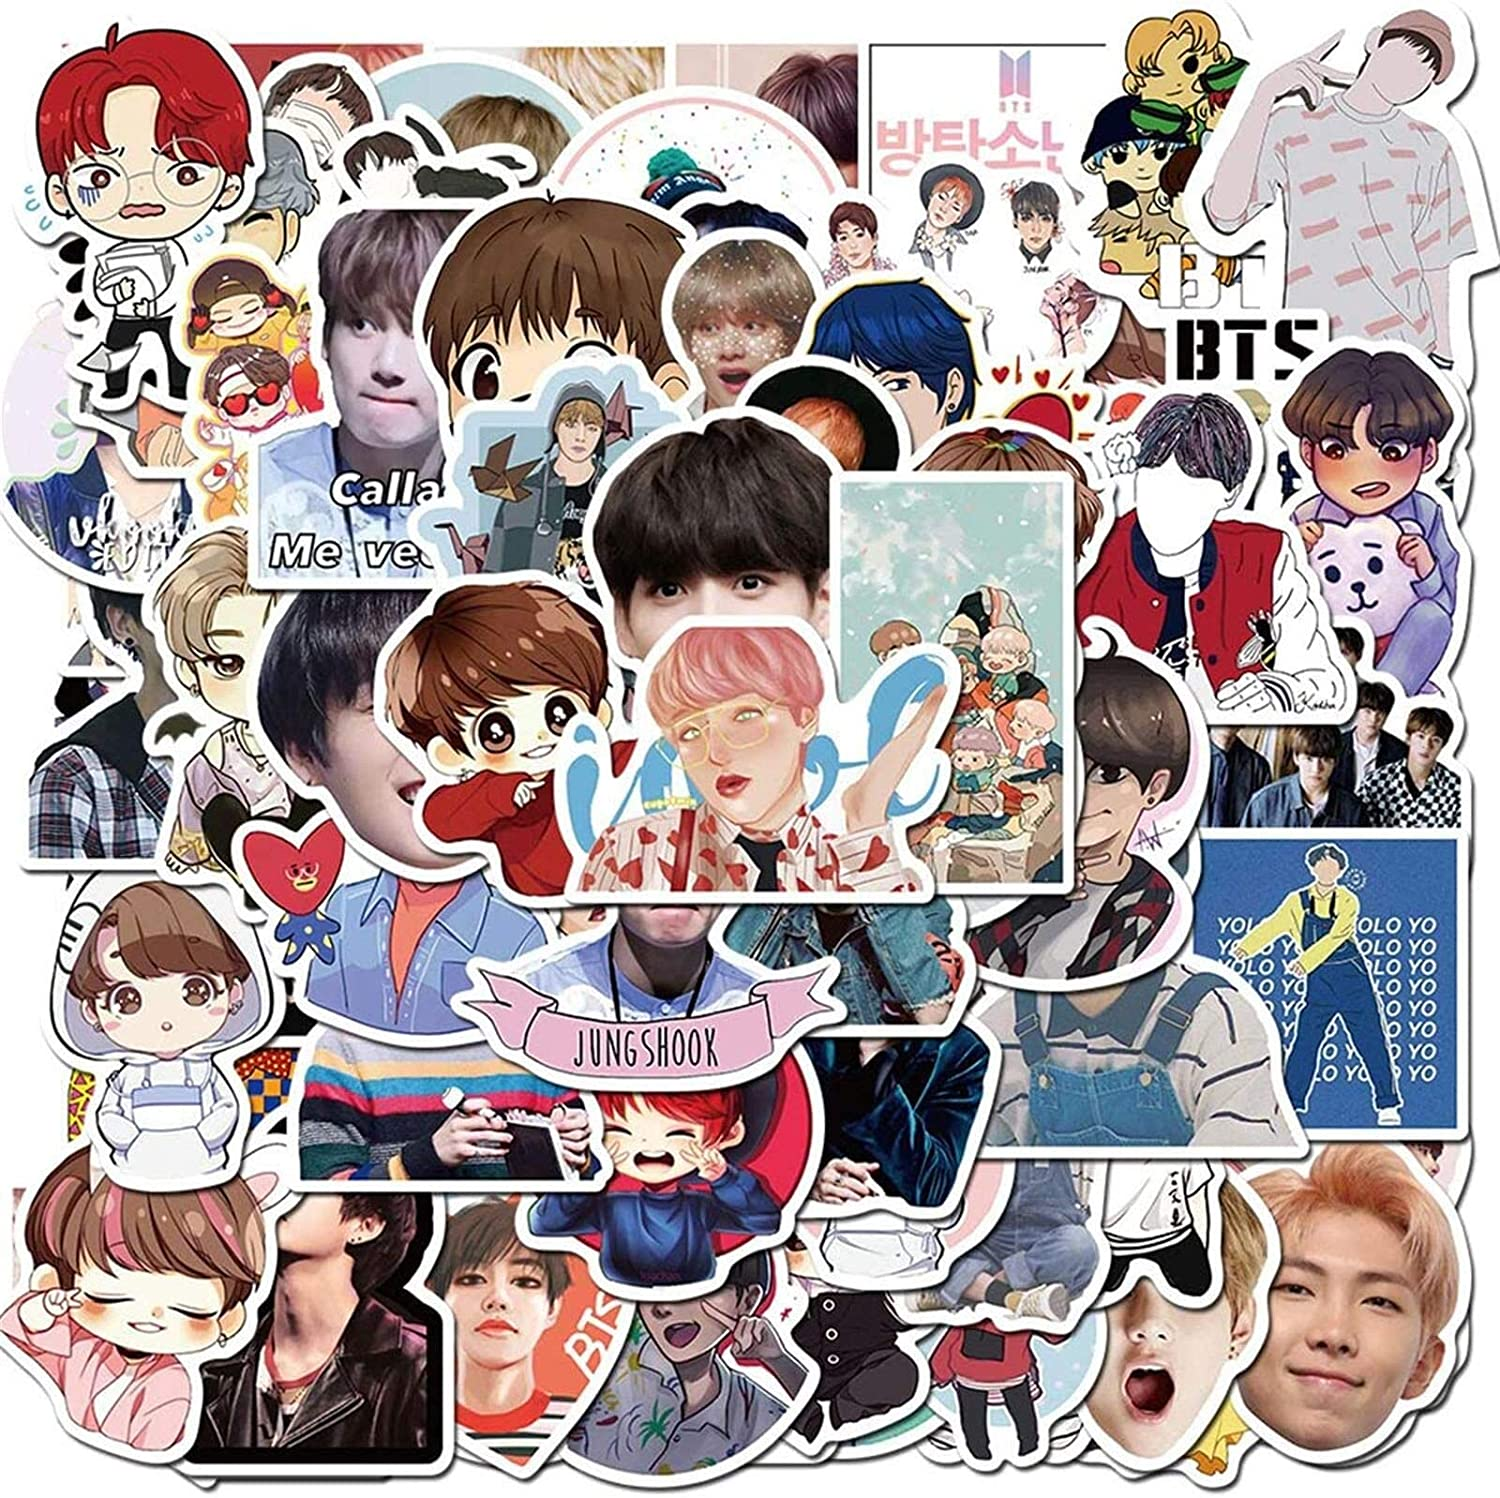 Water Bottles Pop Singer BTS Stickers 126PCS for Laptop and Water Bottles,Waterproof Durable Trendy Vinyl Laptop Decal Stickers Pack for Teens Travel Case Computer